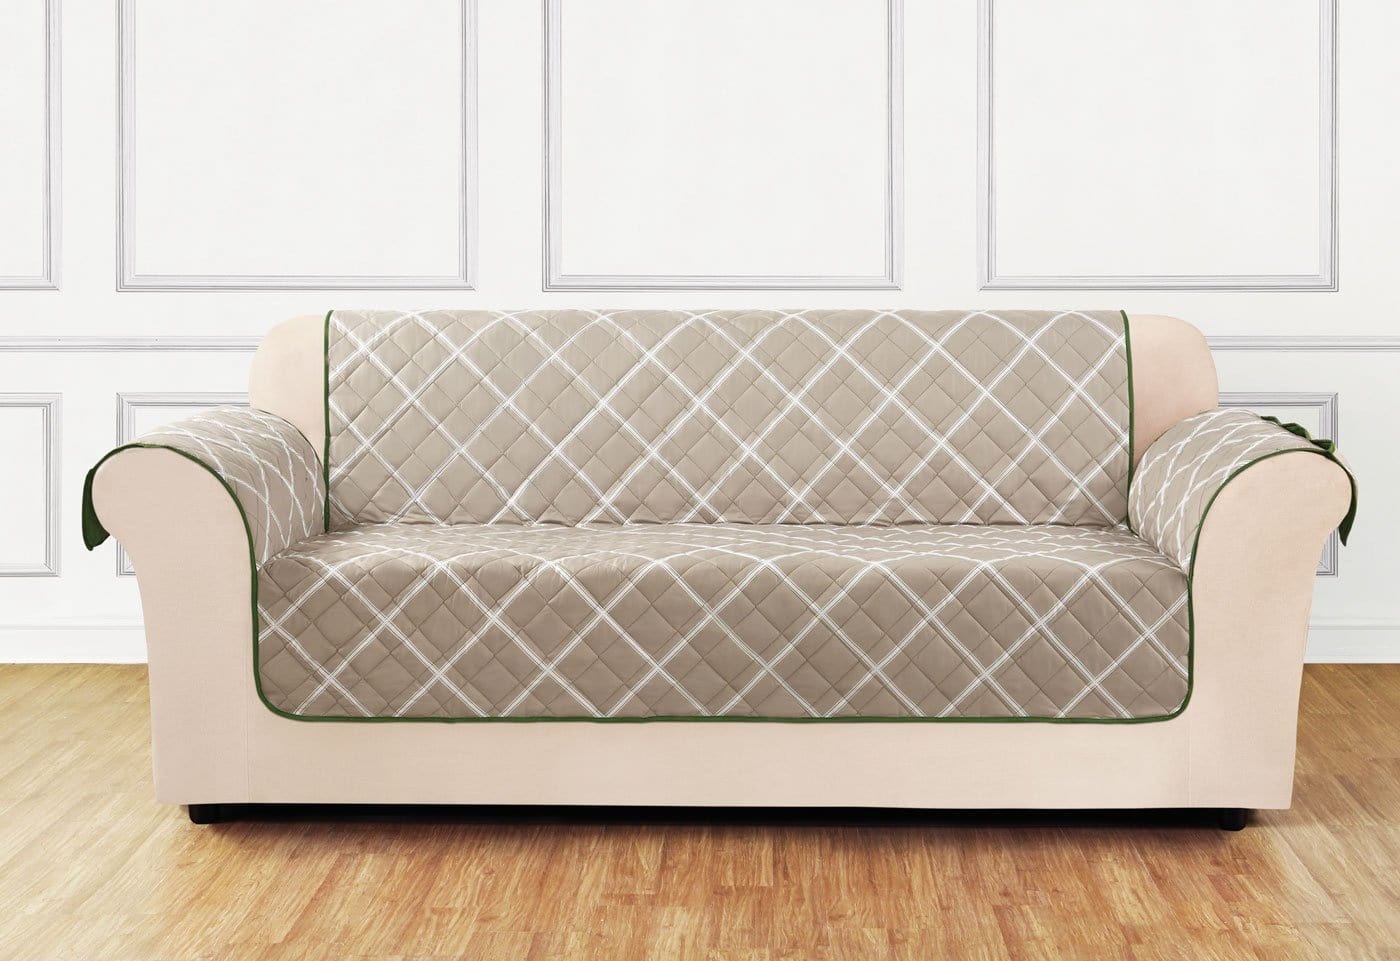 Furniture Flair Loveseat Furniture Cover 100% Polyester Pet Furniture Cover Machine Washable - Loveseat / Outline Lattice - Tan